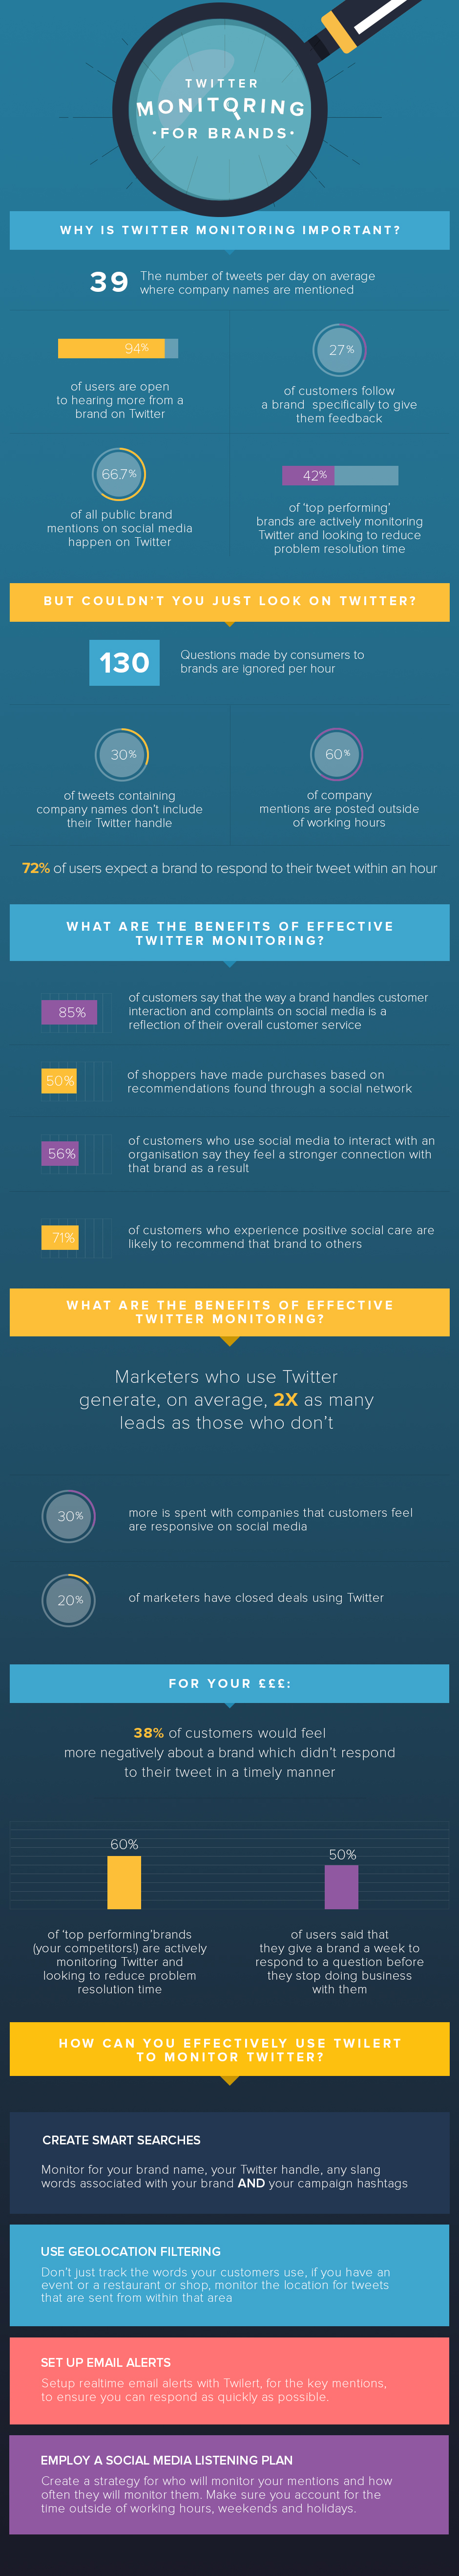 The Importance of Twitter Monitoring for Brands